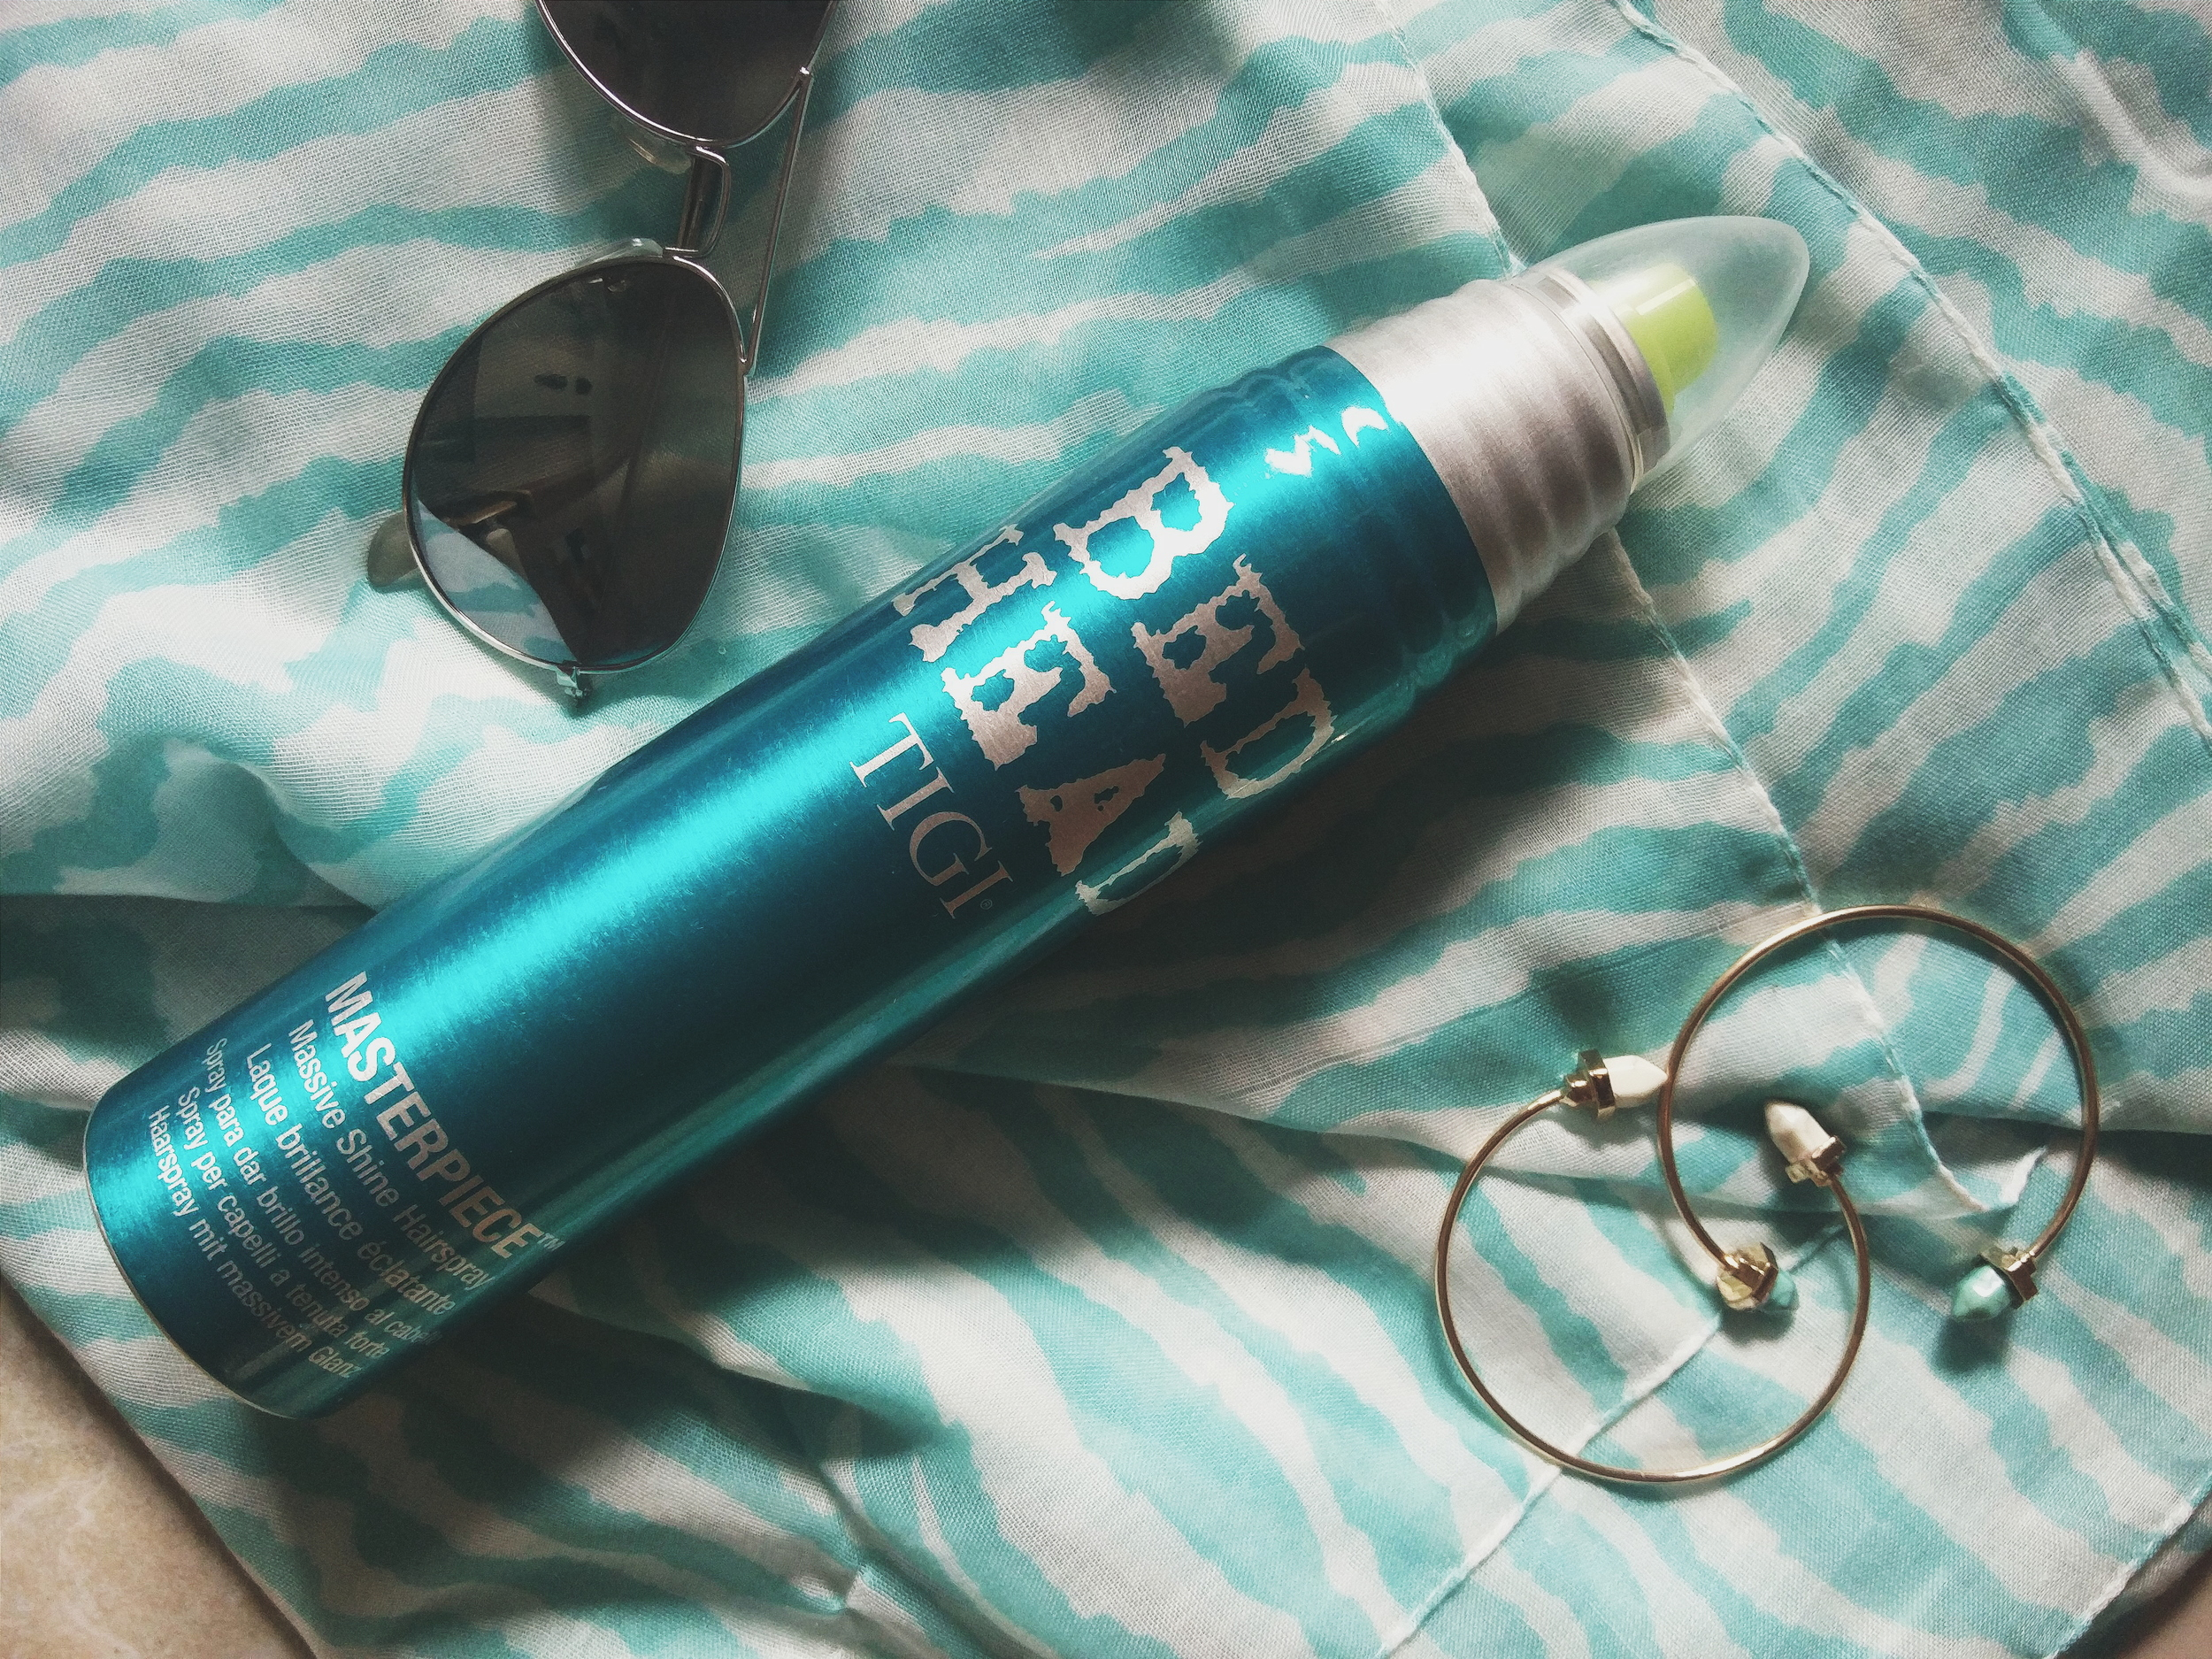 The-Chic-Armoire-by-Nidhi-Kunder-Tigi-Bed-Head-Masterpiece-Review-1